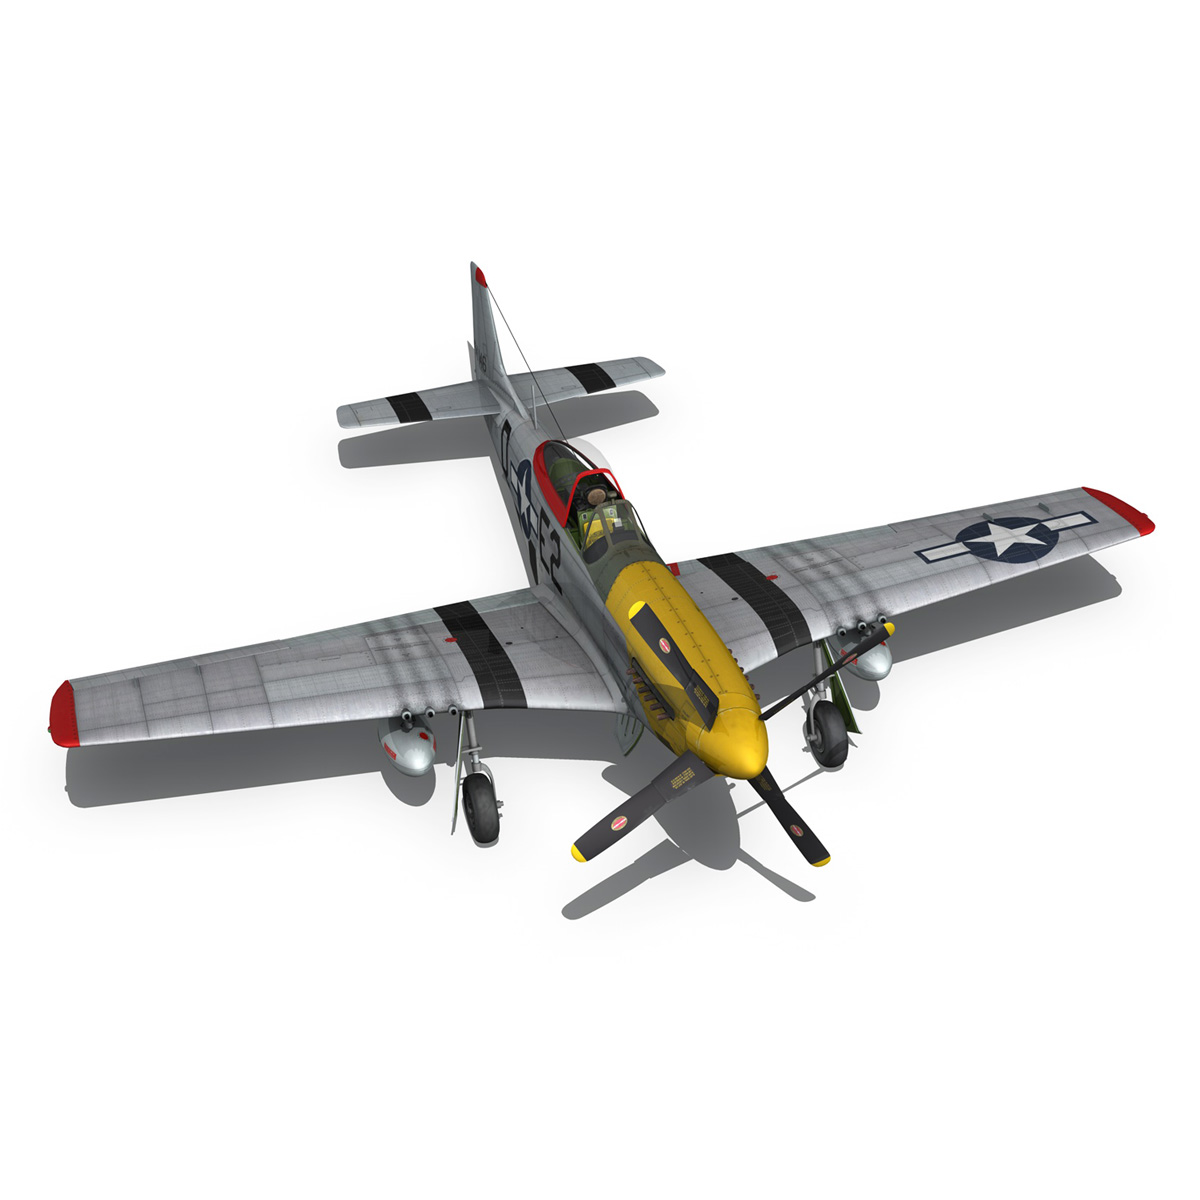 north american p-51d – mustang – detroit miss 3d model 3ds fbx c4d lwo obj 267606